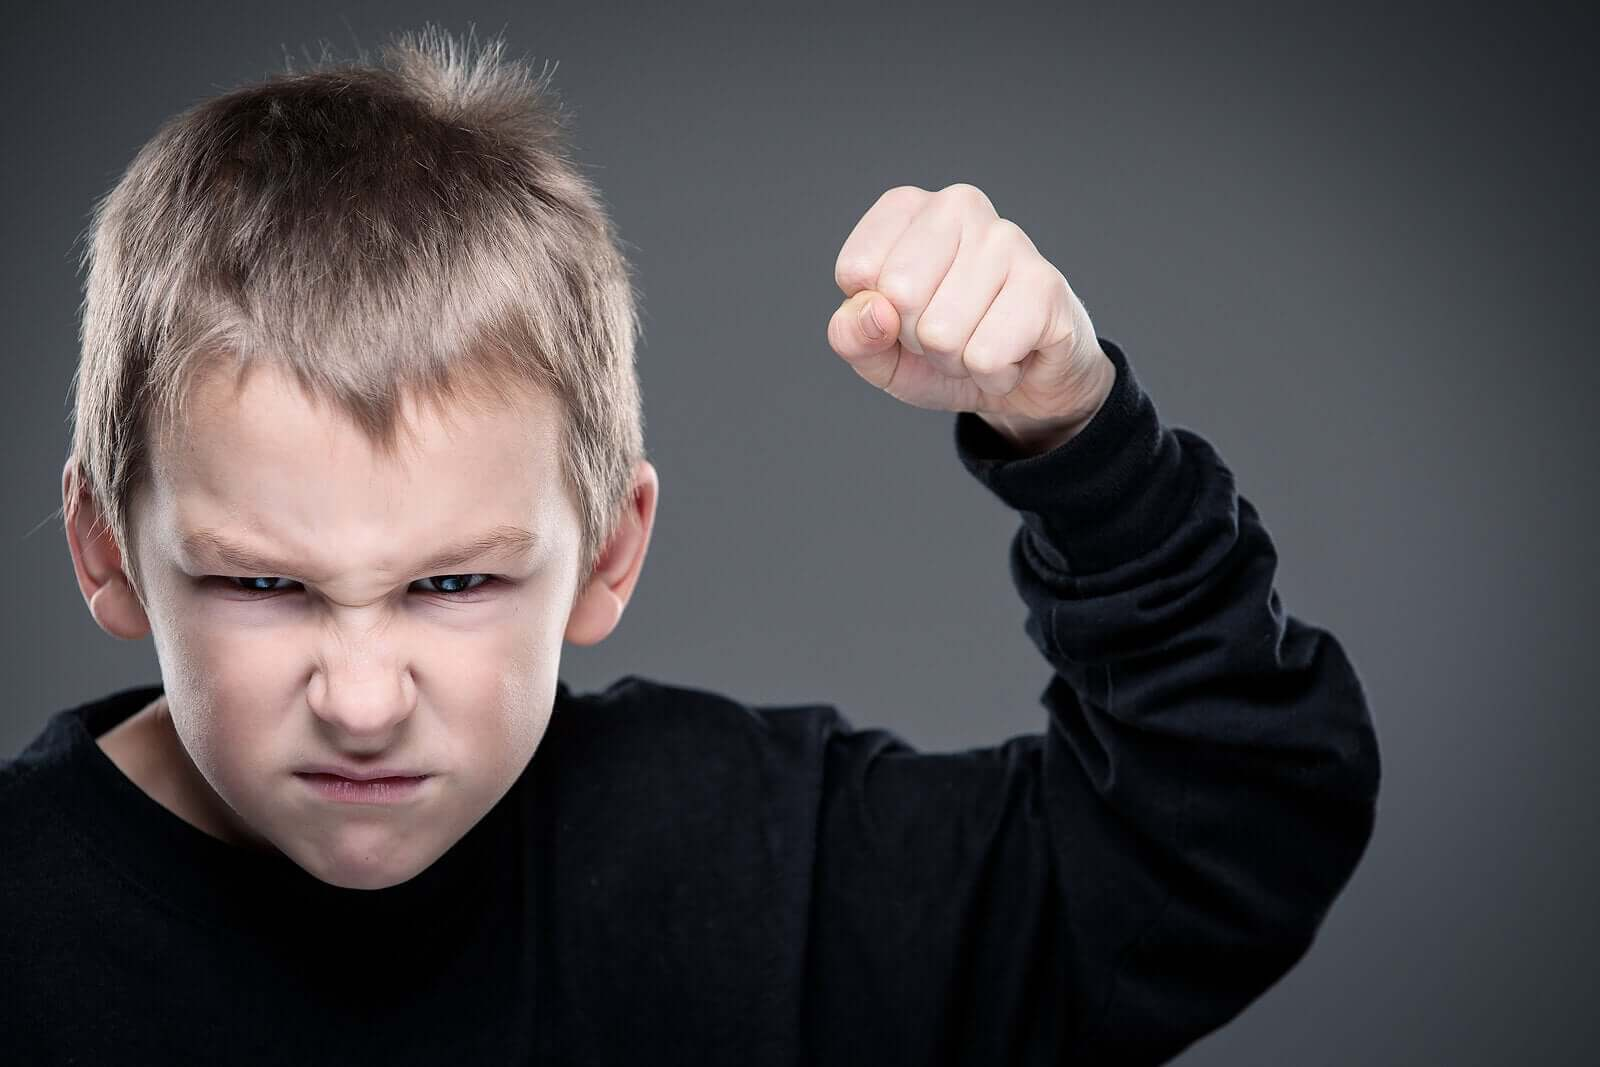 Antisocial Conduct Disorder: Symptoms, Causes and Treatment